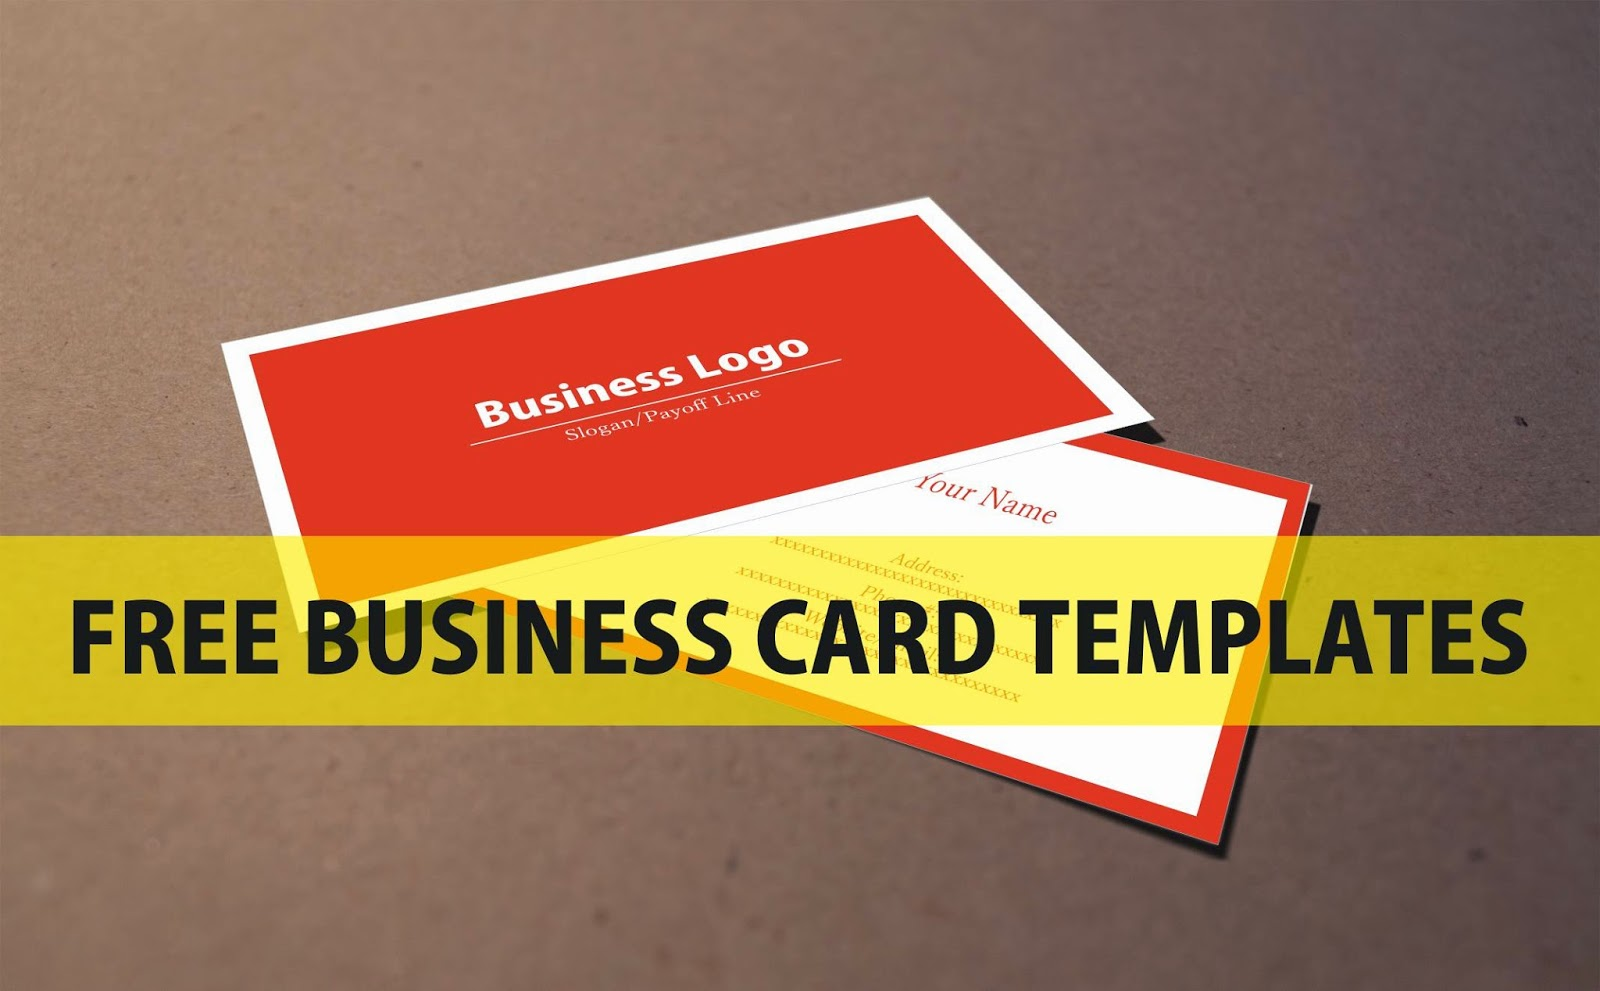 Free business card template download coreldraw file a graphic free business card template download coreldraw file accmission